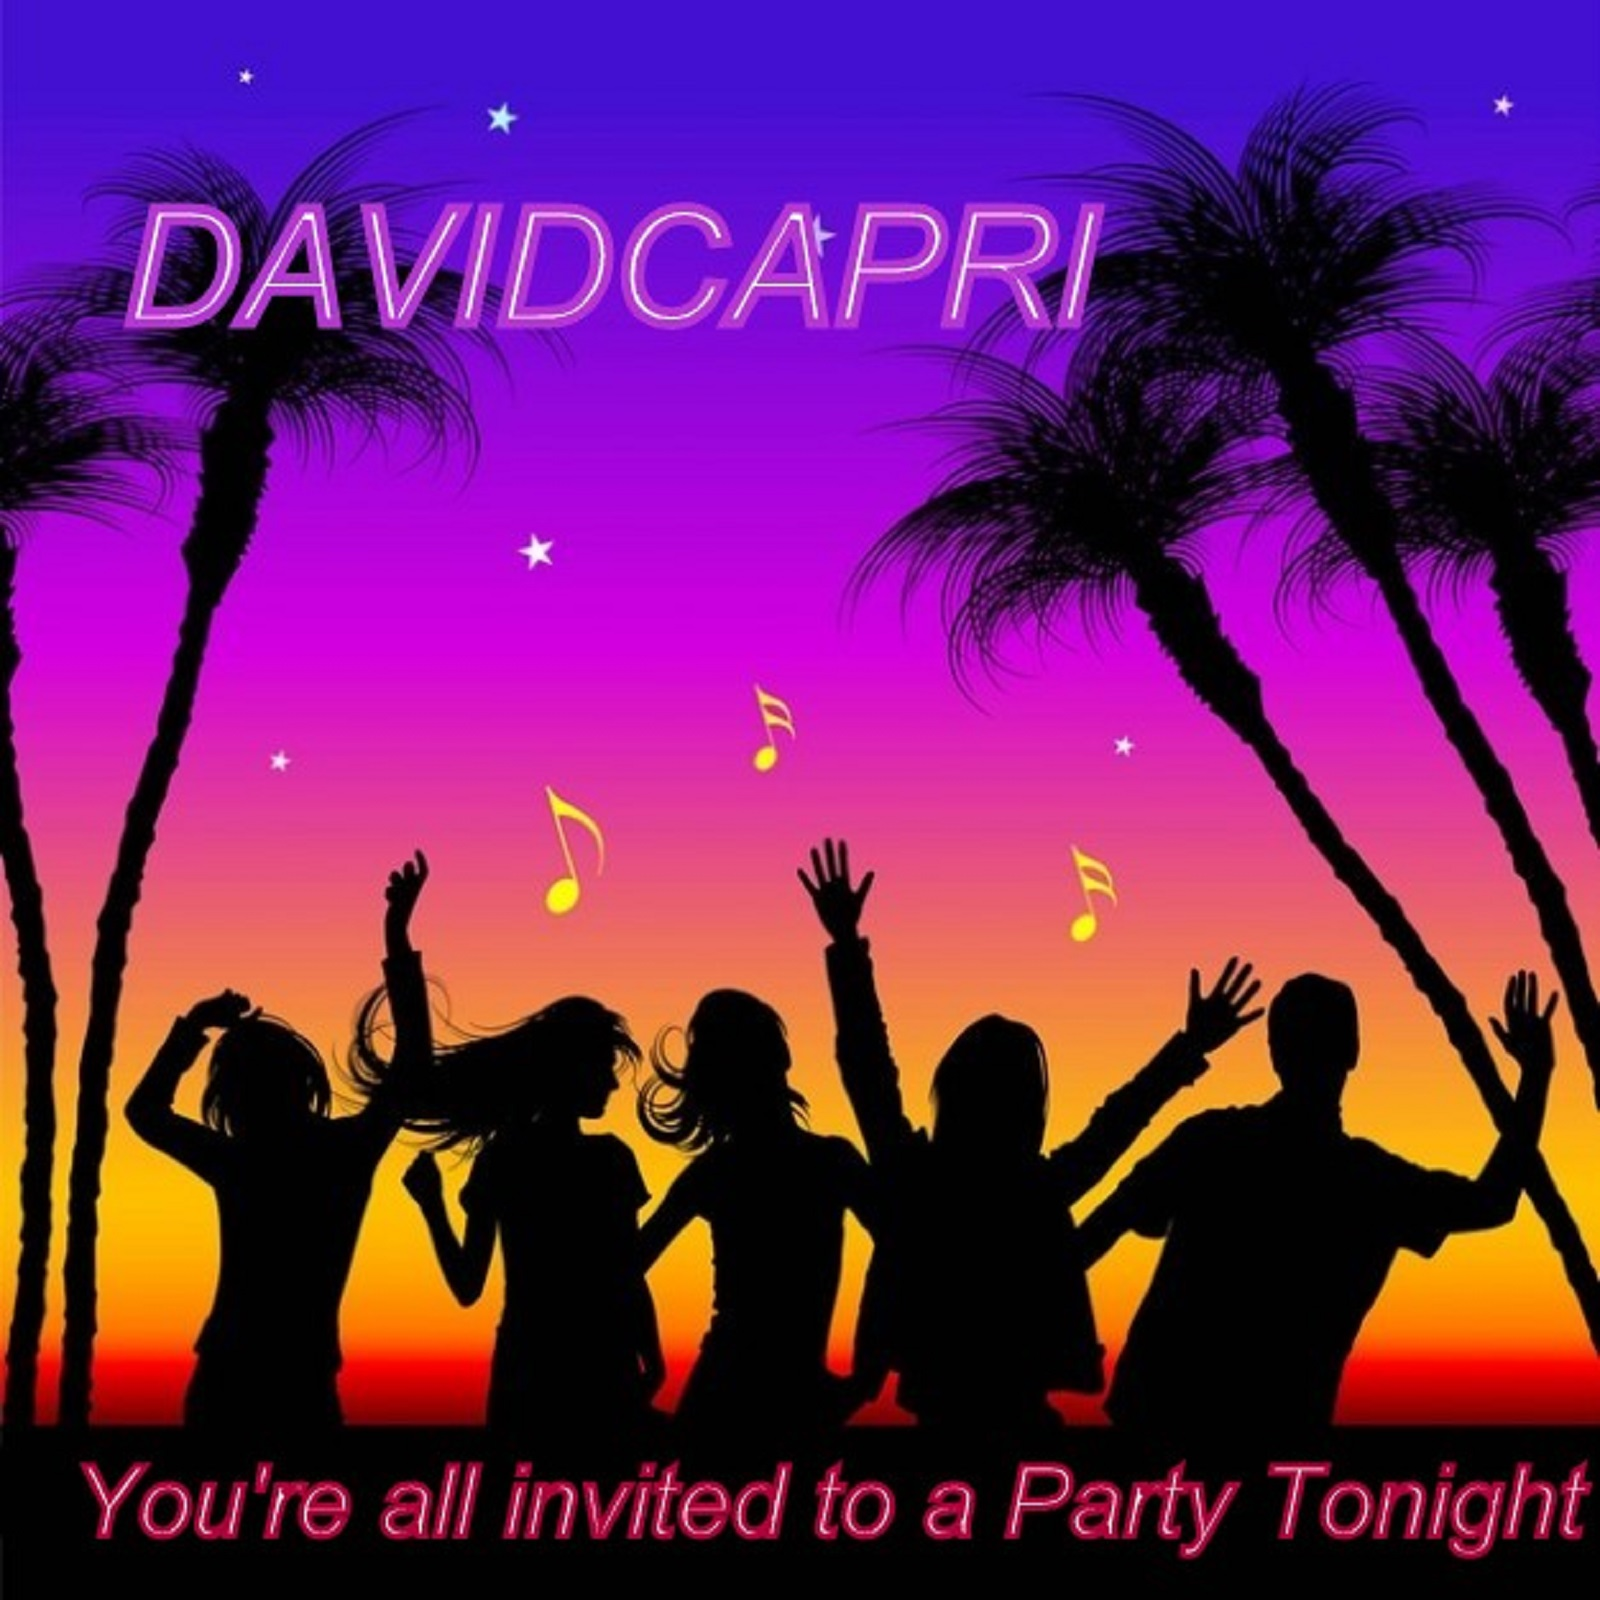 /uploads2/111005_7_3_2013_4_35_26_PM_-_David Dance.jpg